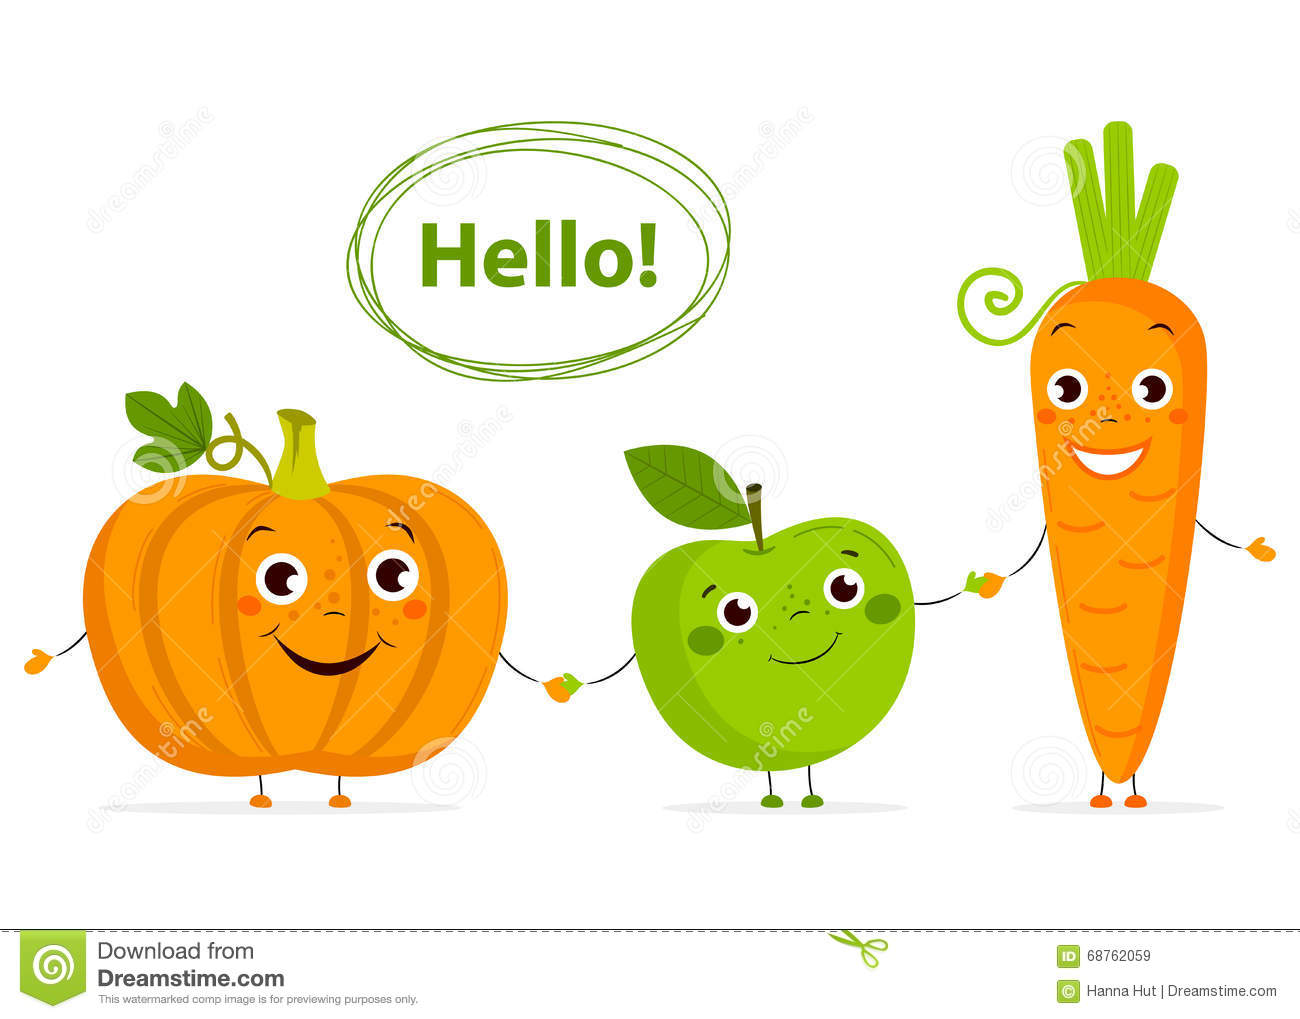 Funny Cartoon Fruits And Vegetables With Eyes In Flat